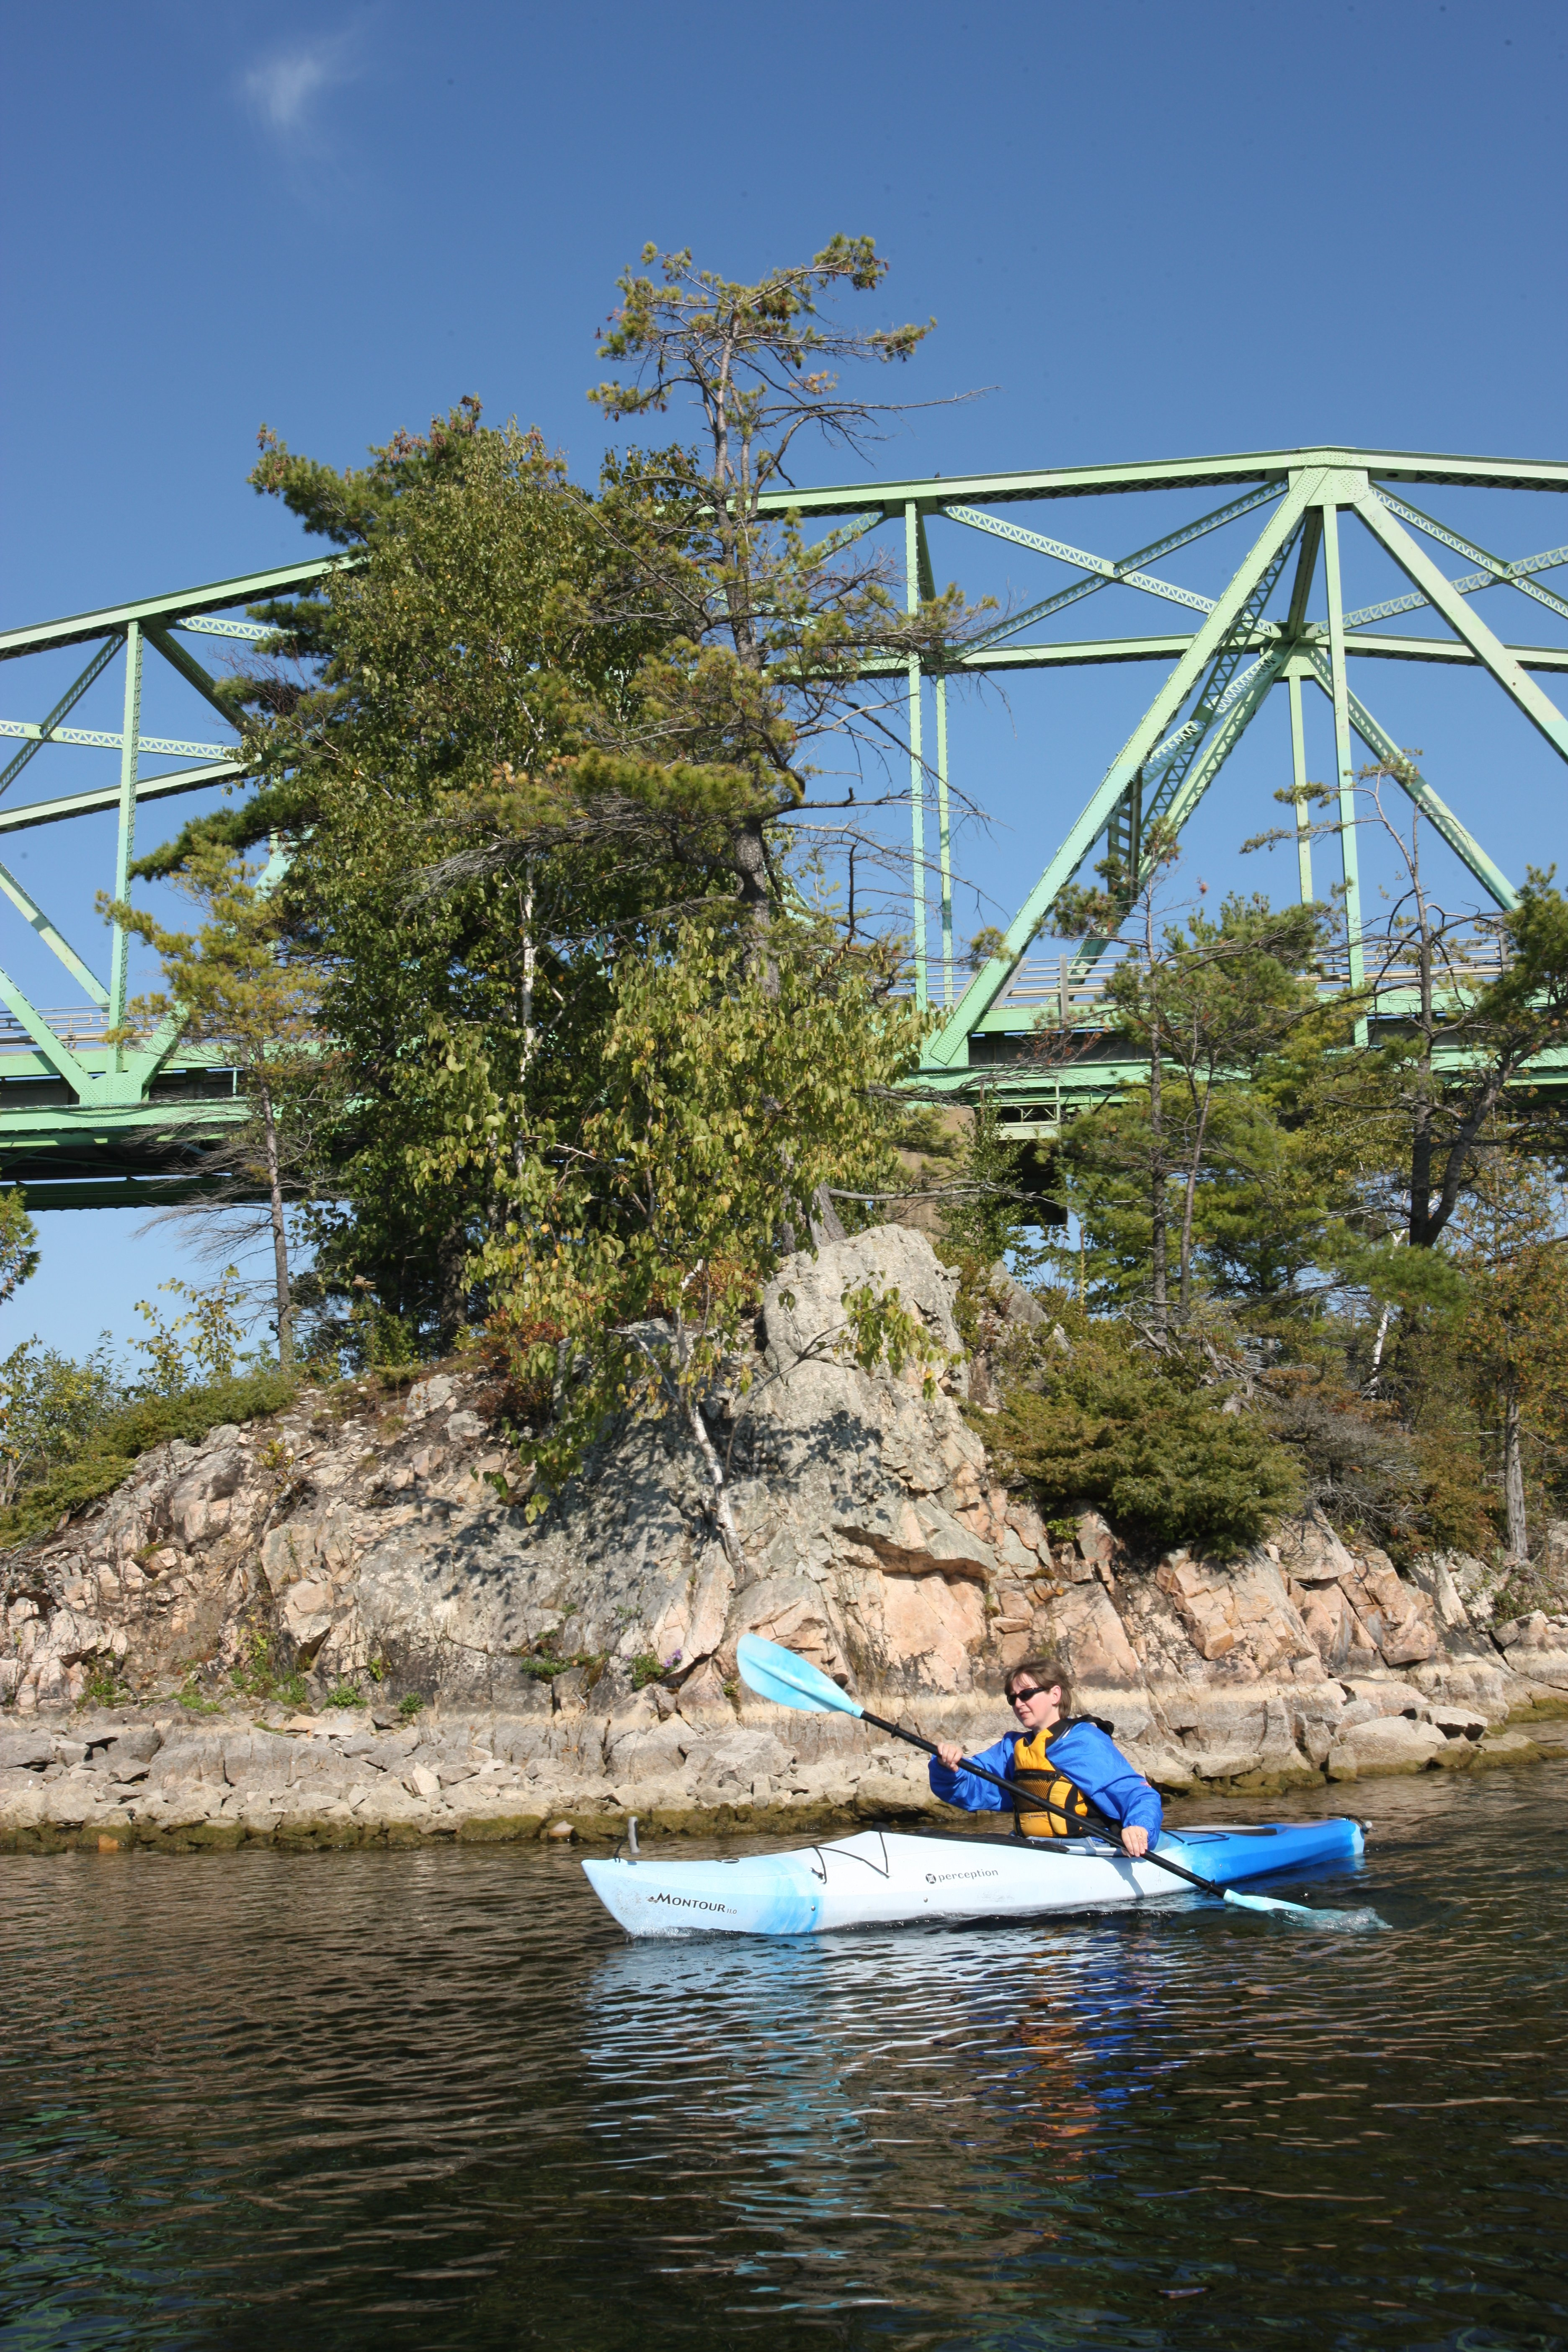 Kayaking on the St. Lawrence